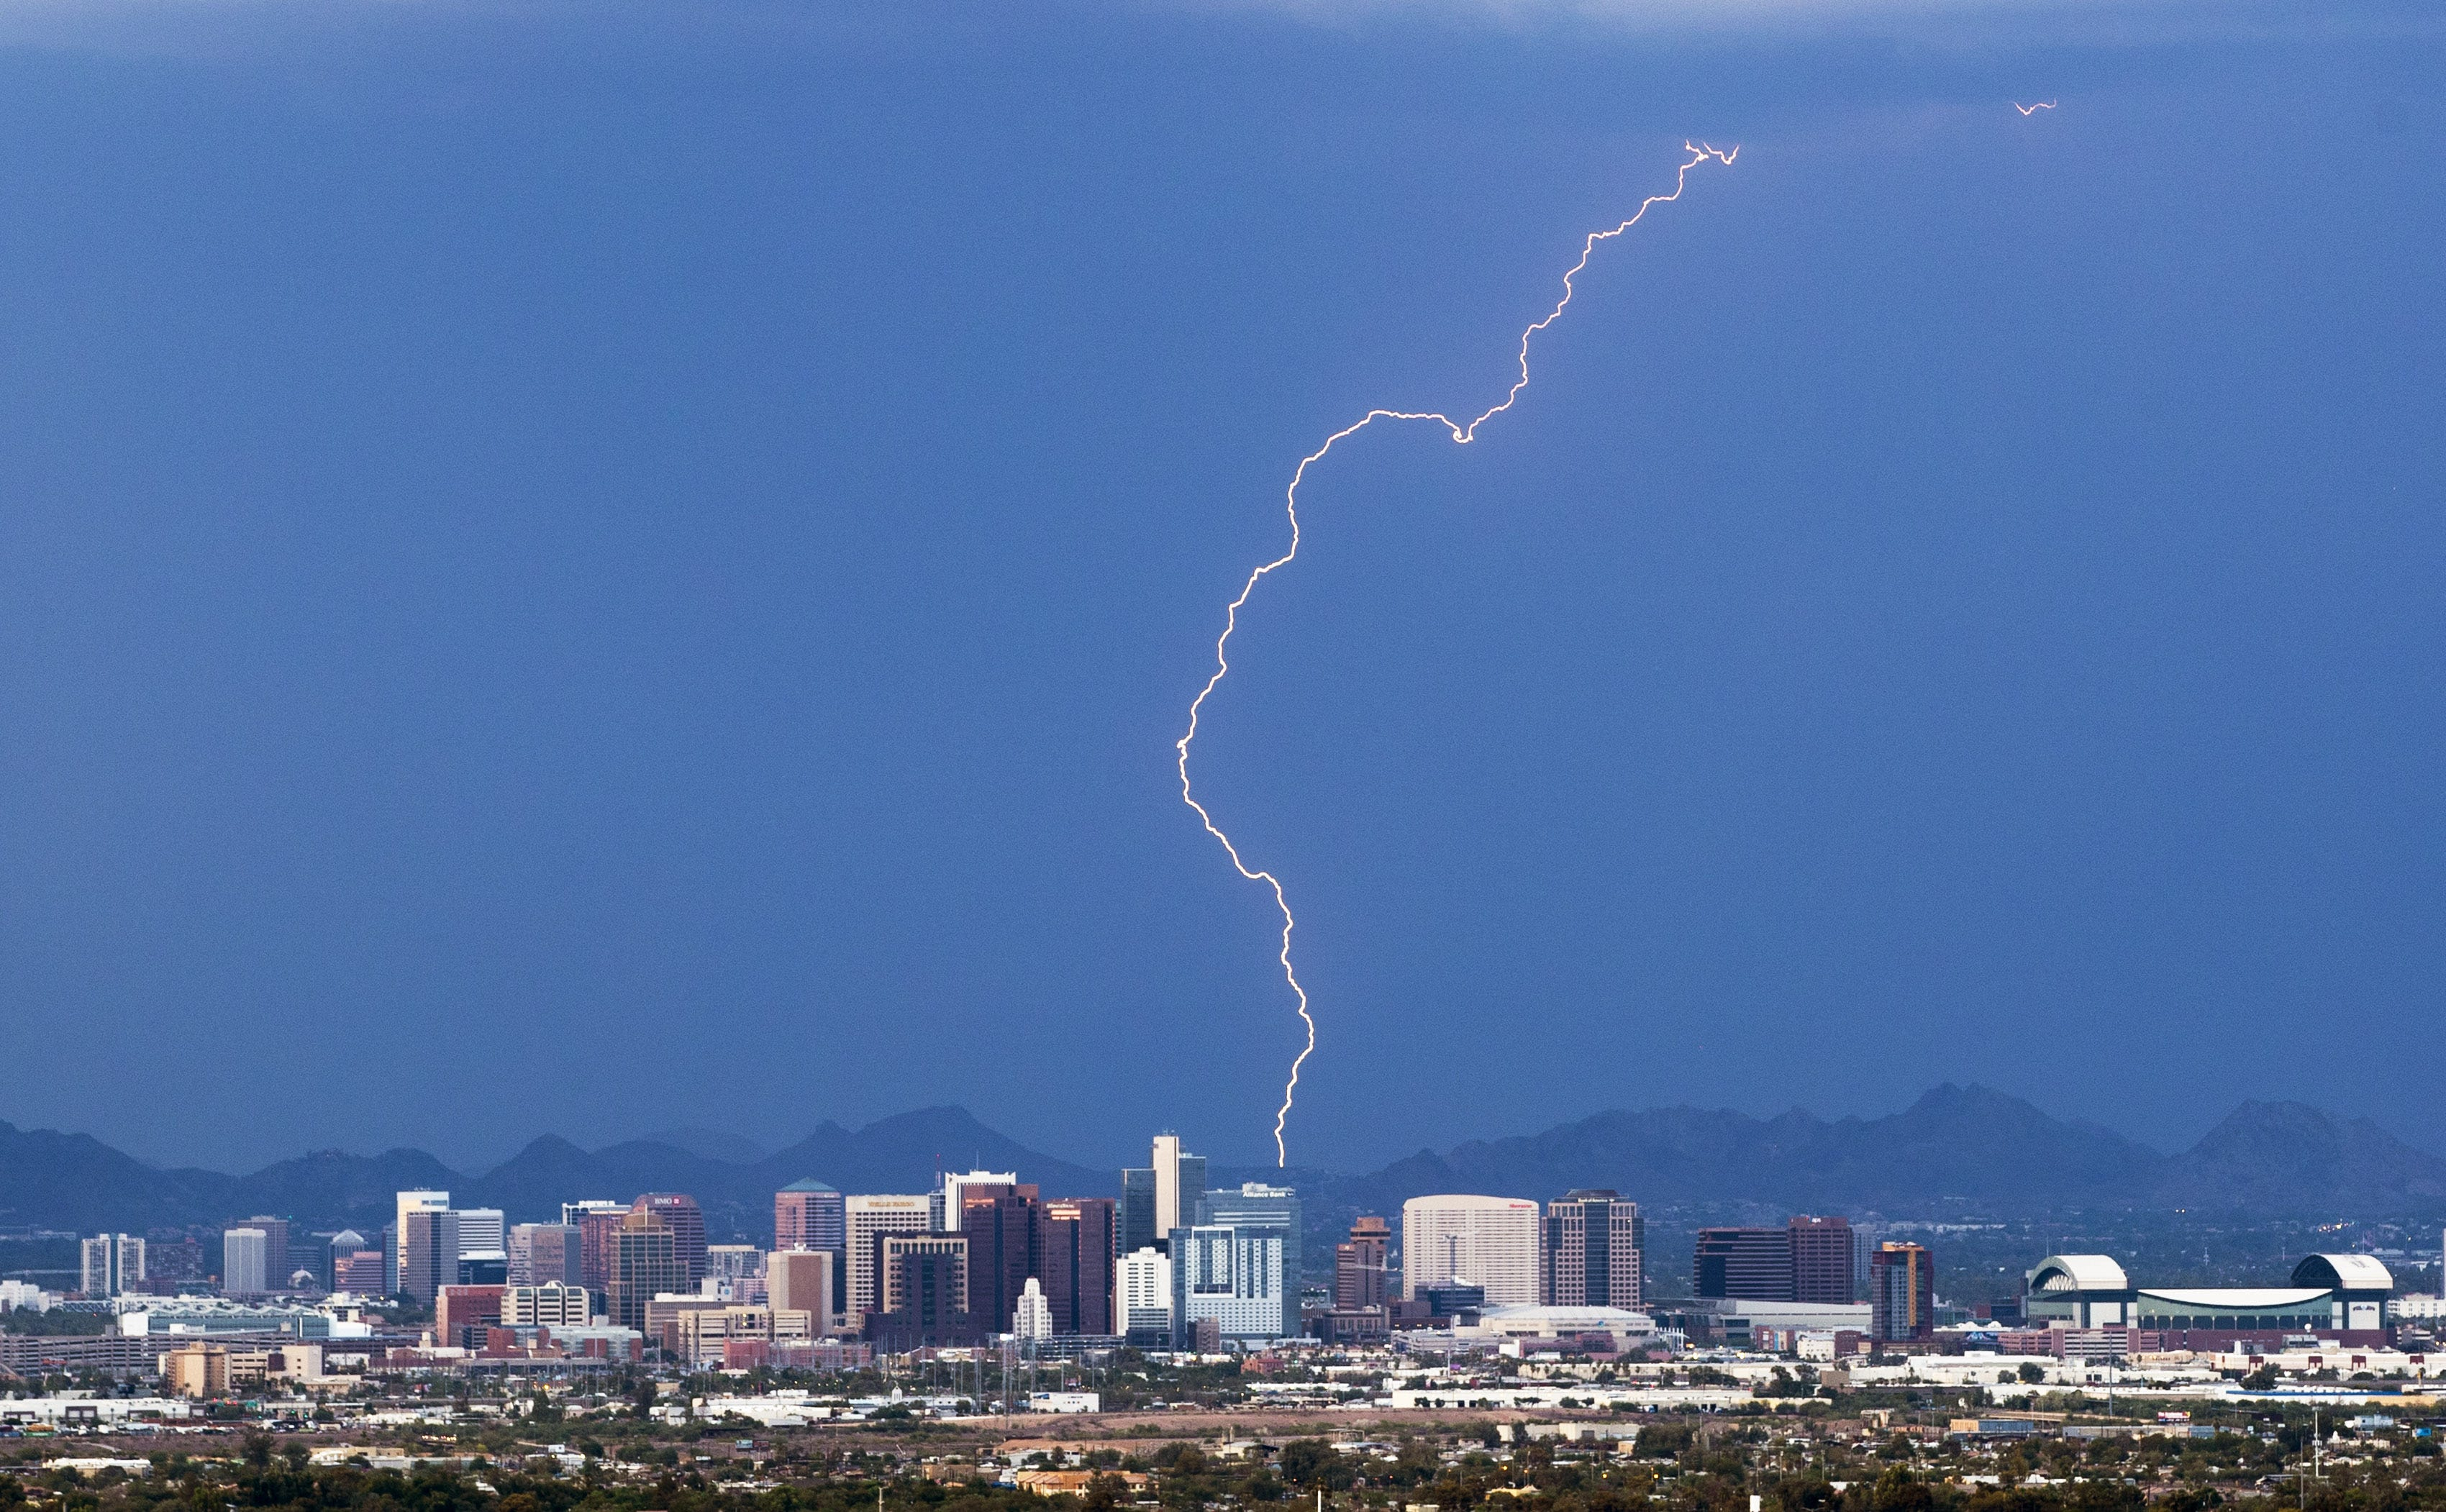 Road closures, cleanup continue after strong monsoon storm pummels Phoenix area | Arizona Central